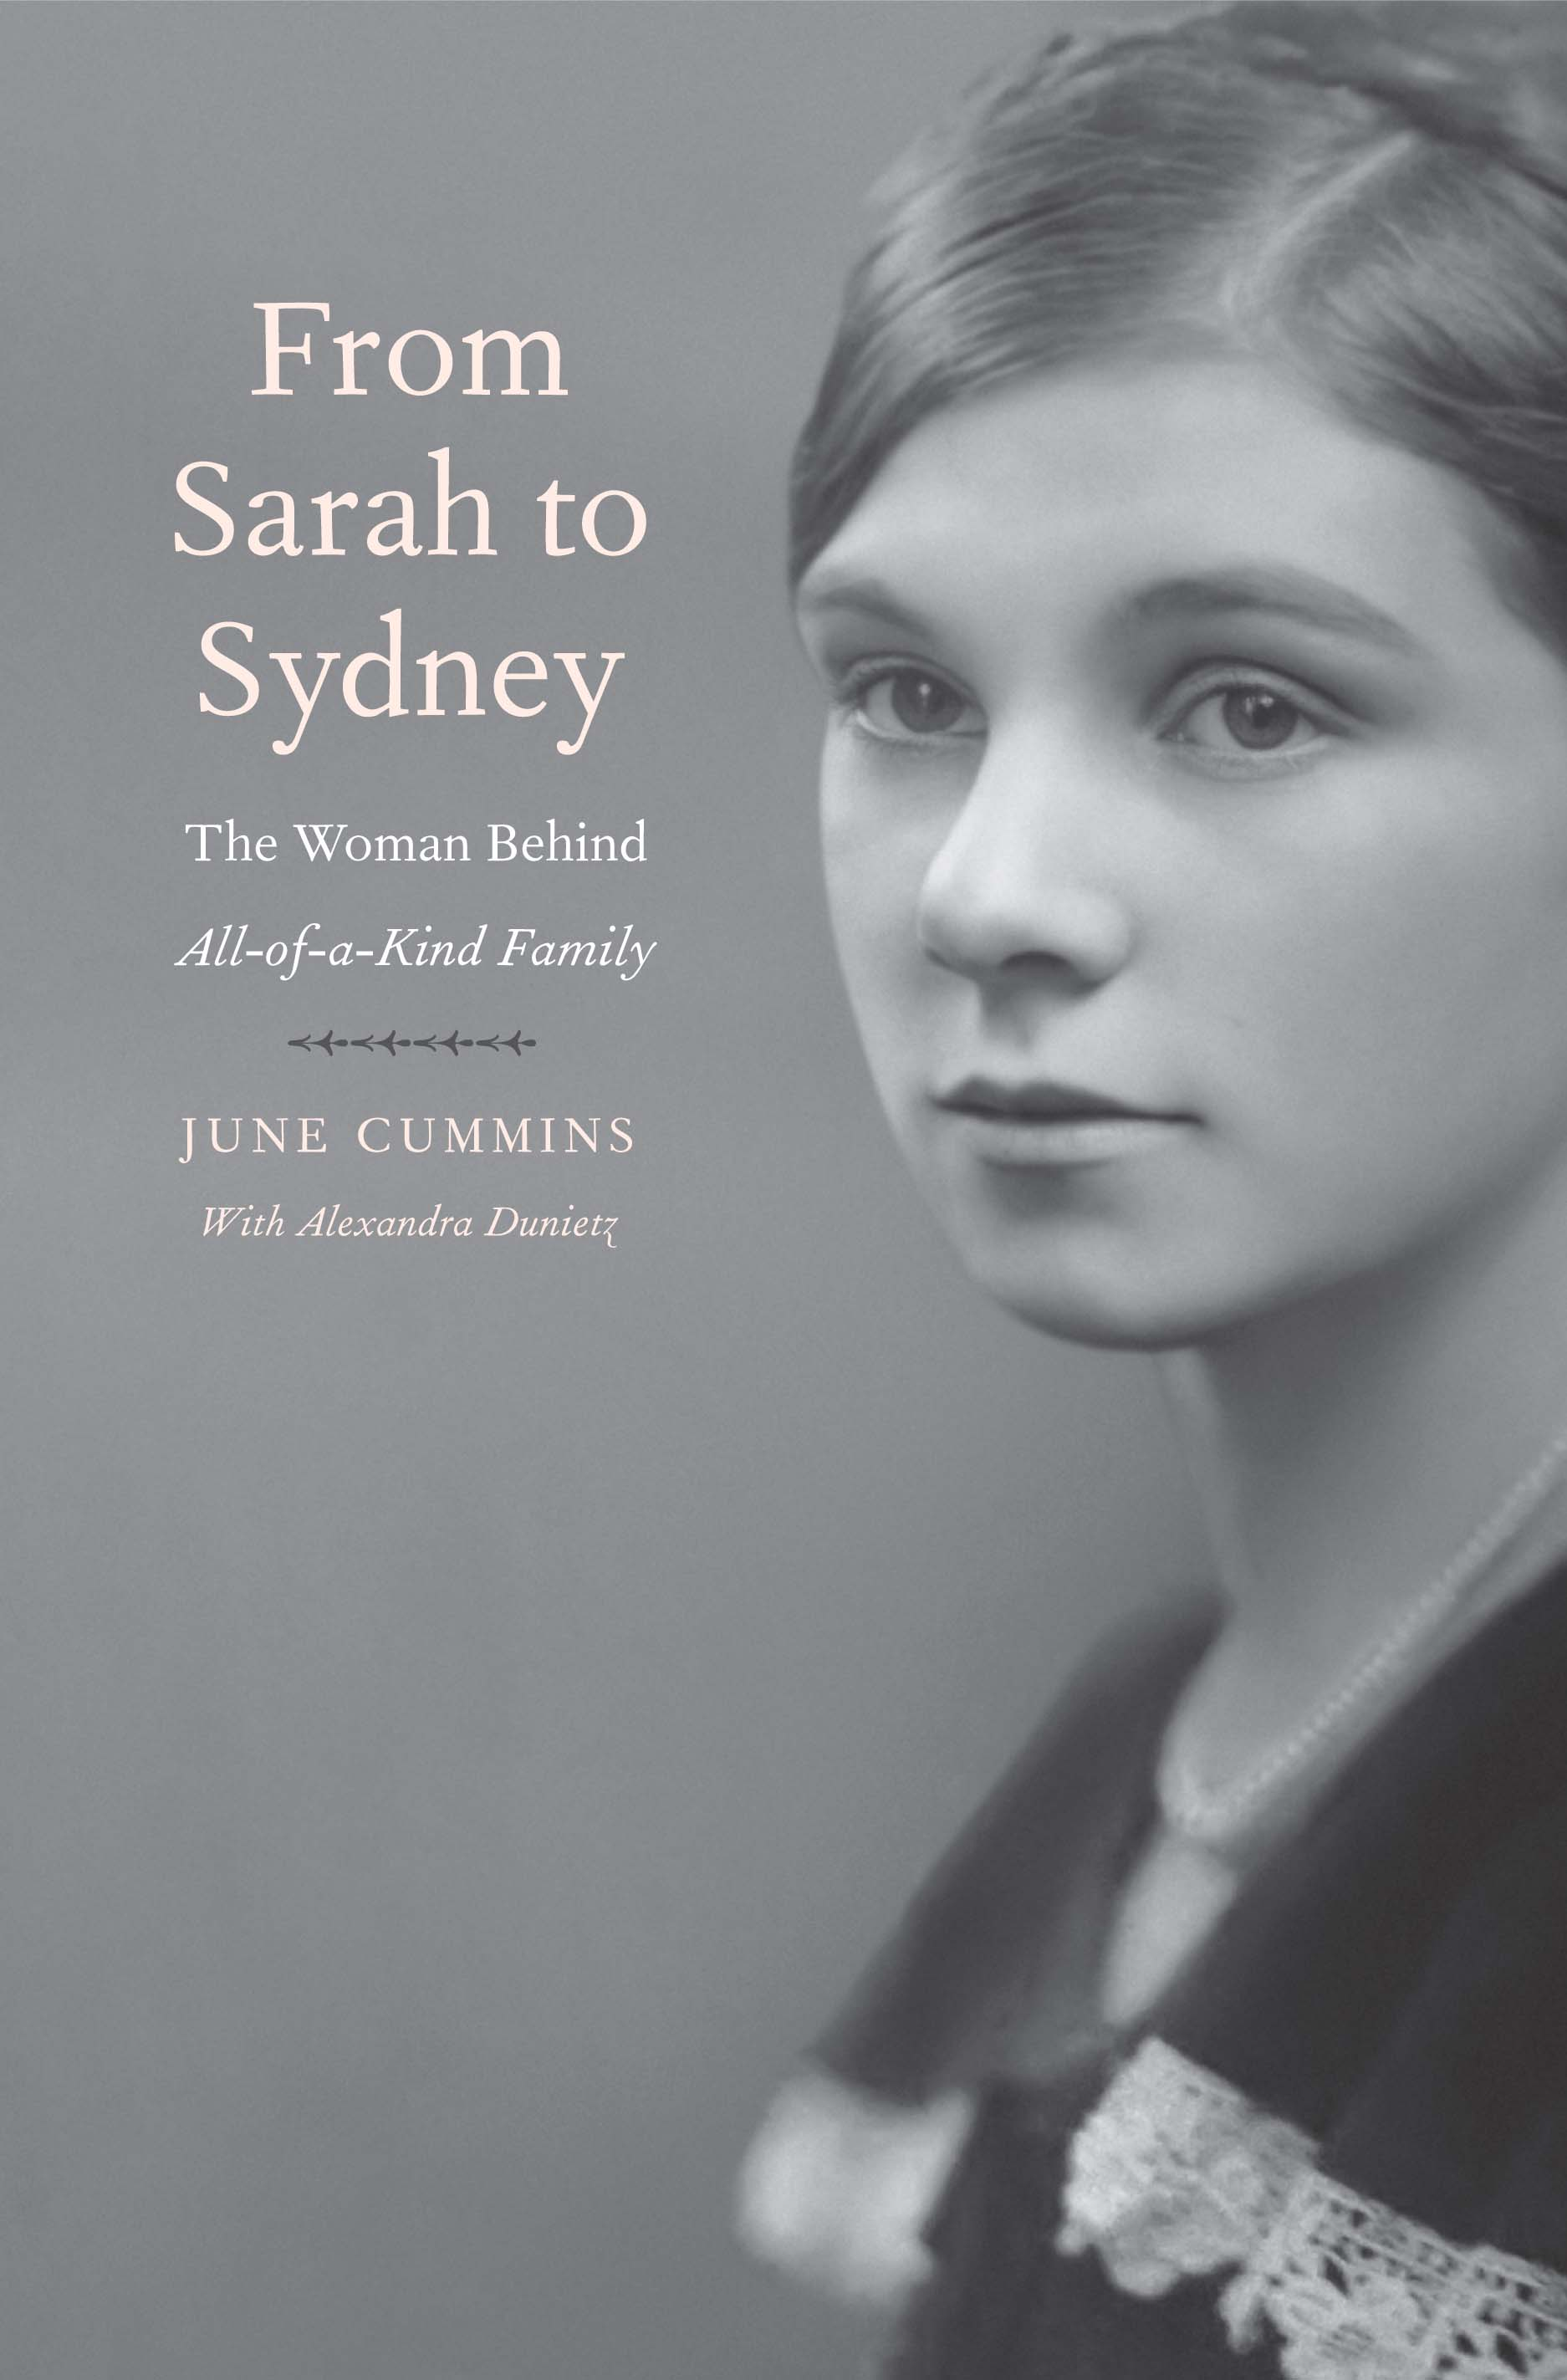 From Sarah to Sydney: The Woman Behind All-of-a-Kind Family